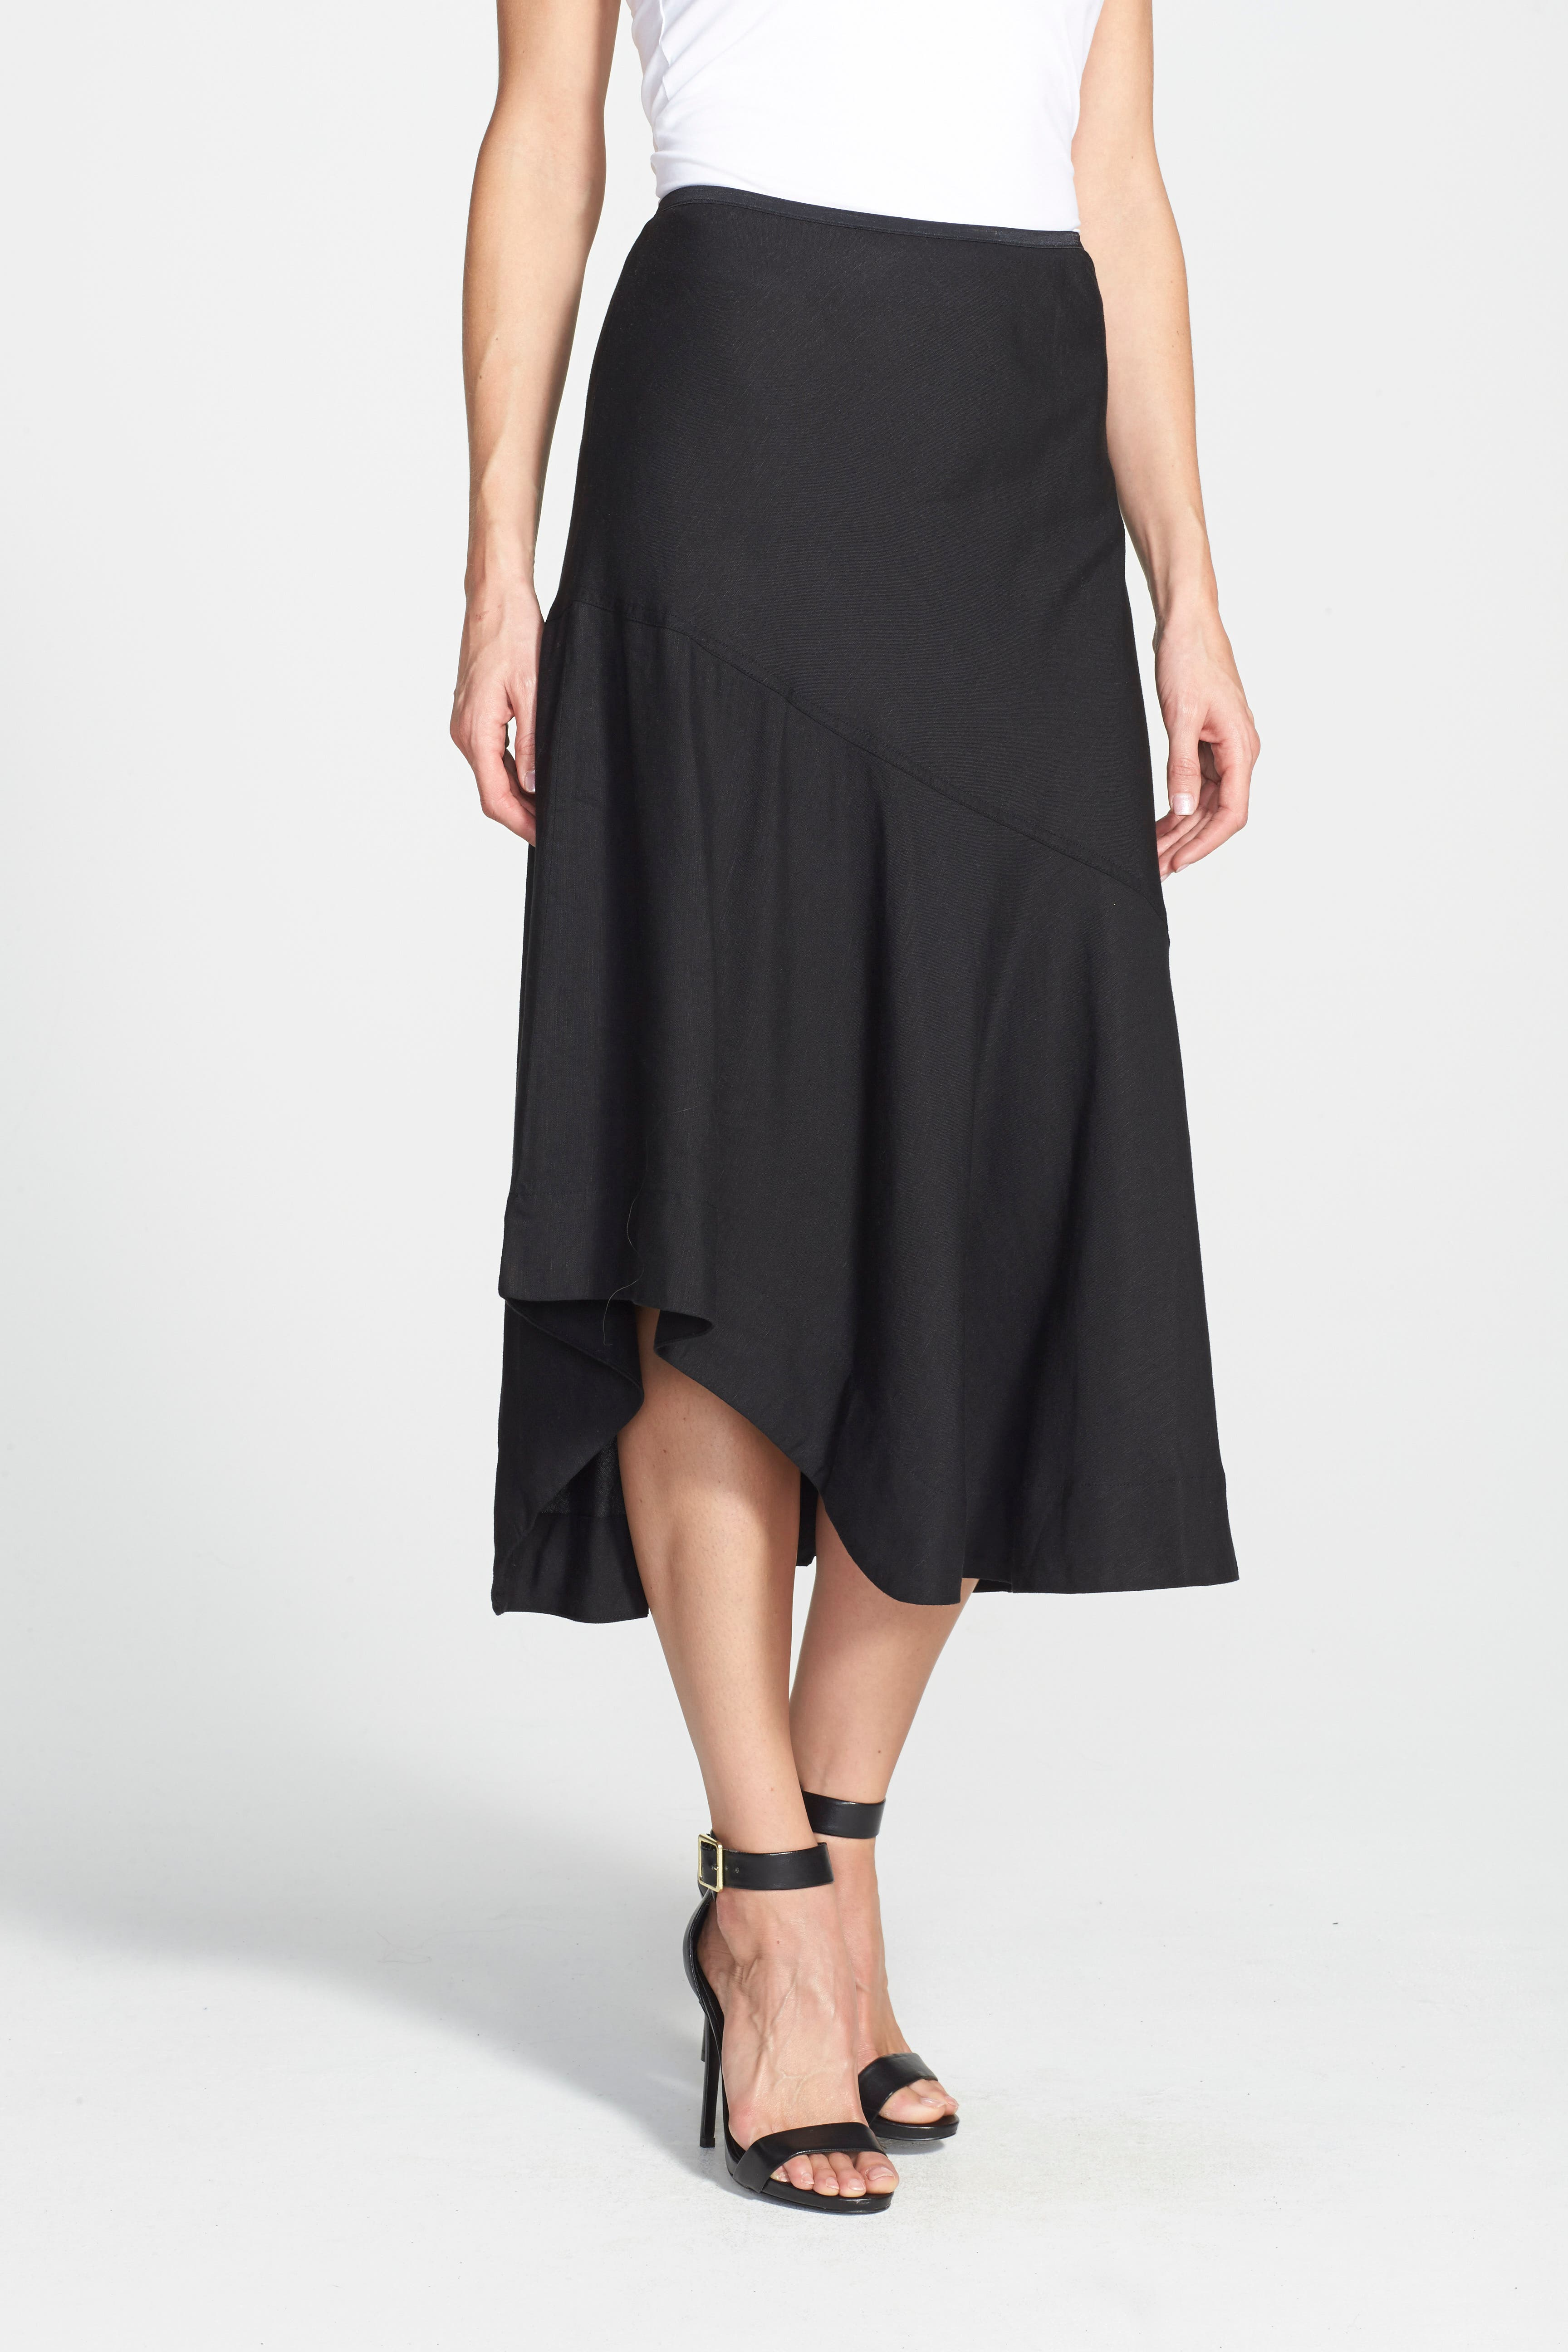 NIC+ZOE, 'The Long Engagement' Midi Skirt, Alternate thumbnail 4, color, 004